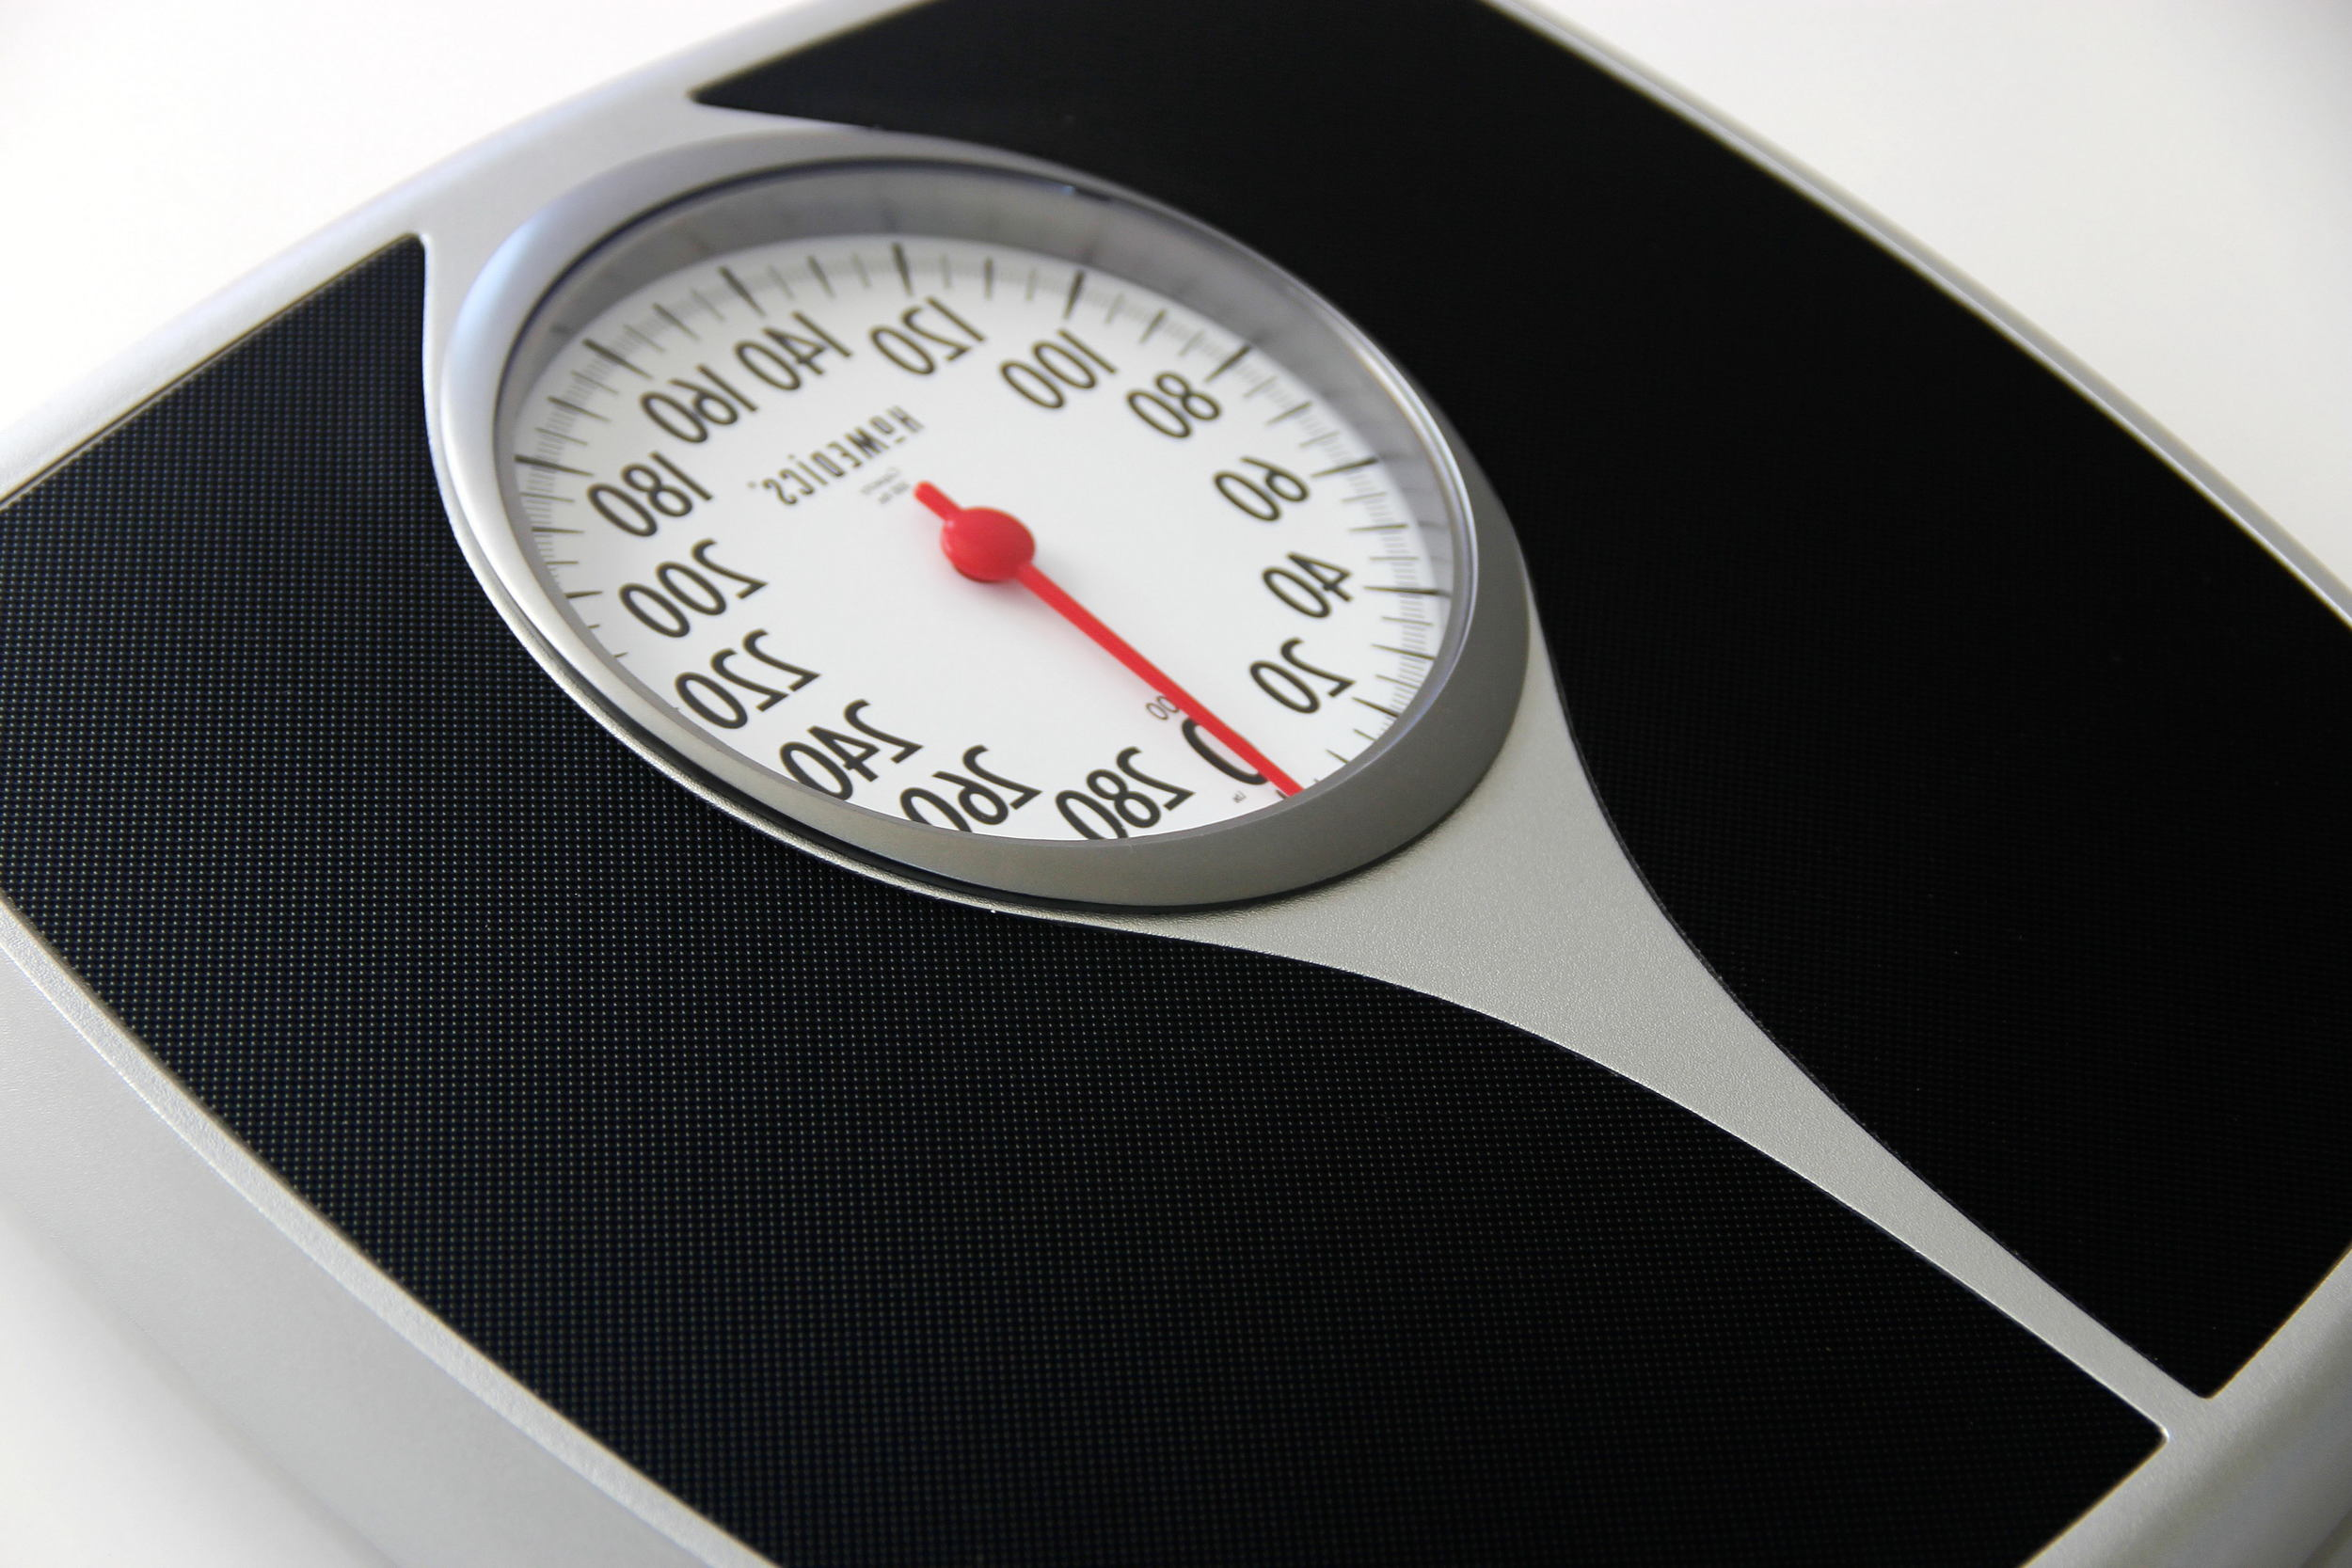 spring-scale-used-to-determine-ones-weight-in-pounds.jpg